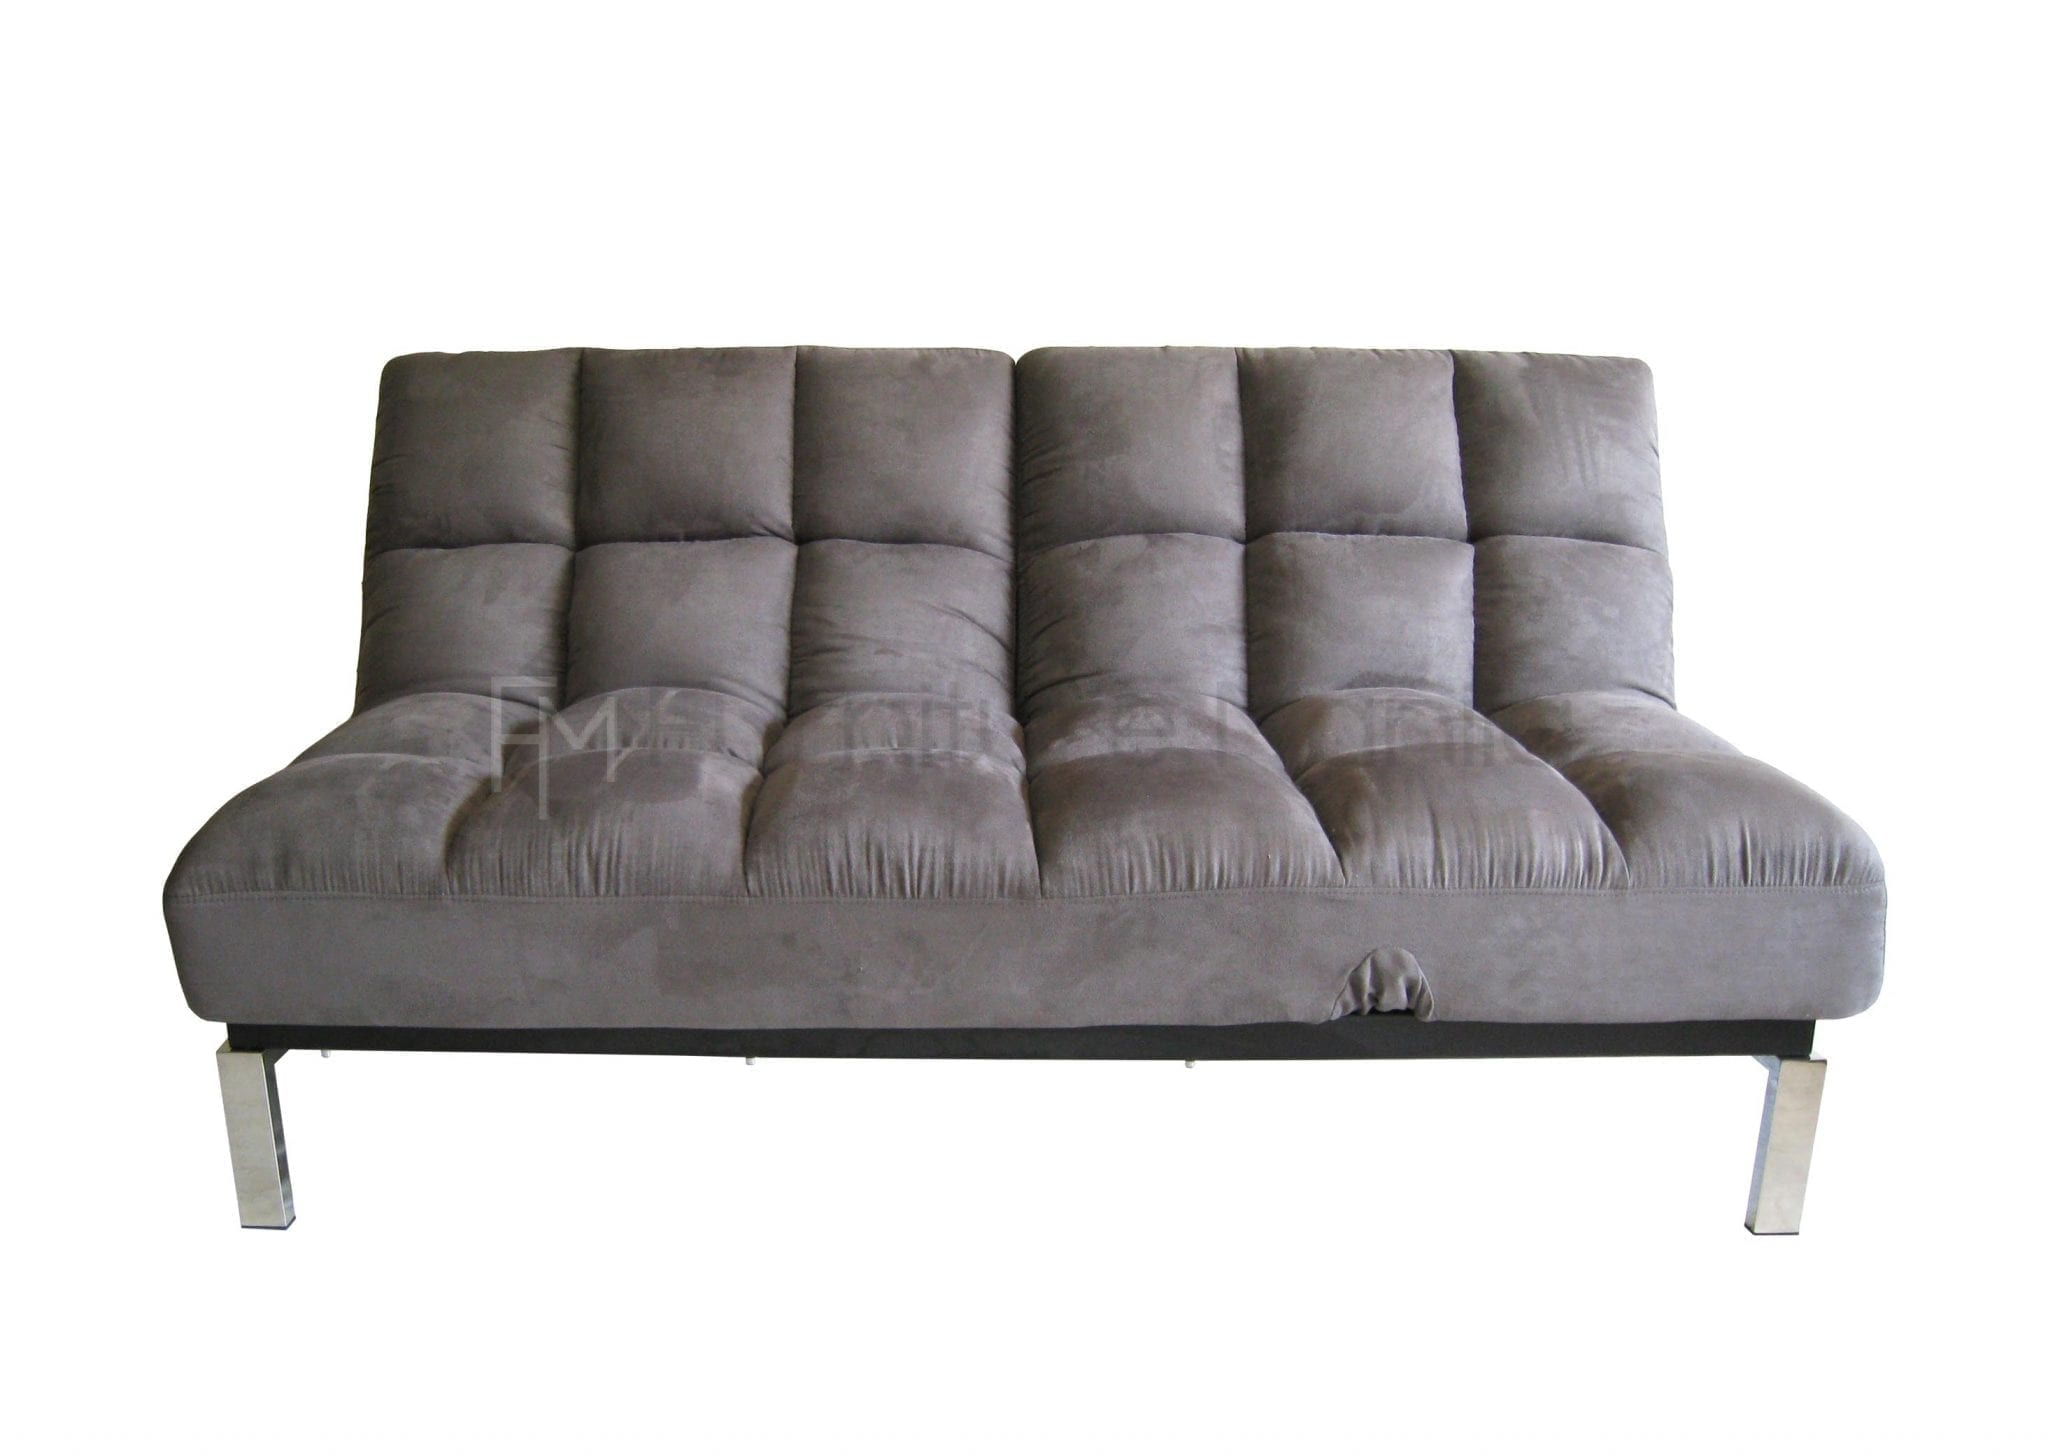 100 Transformable Furniture Best 25 Transforming  : NormanGray front from 45.76.66.238 size 2048 x 1456 jpeg 164kB